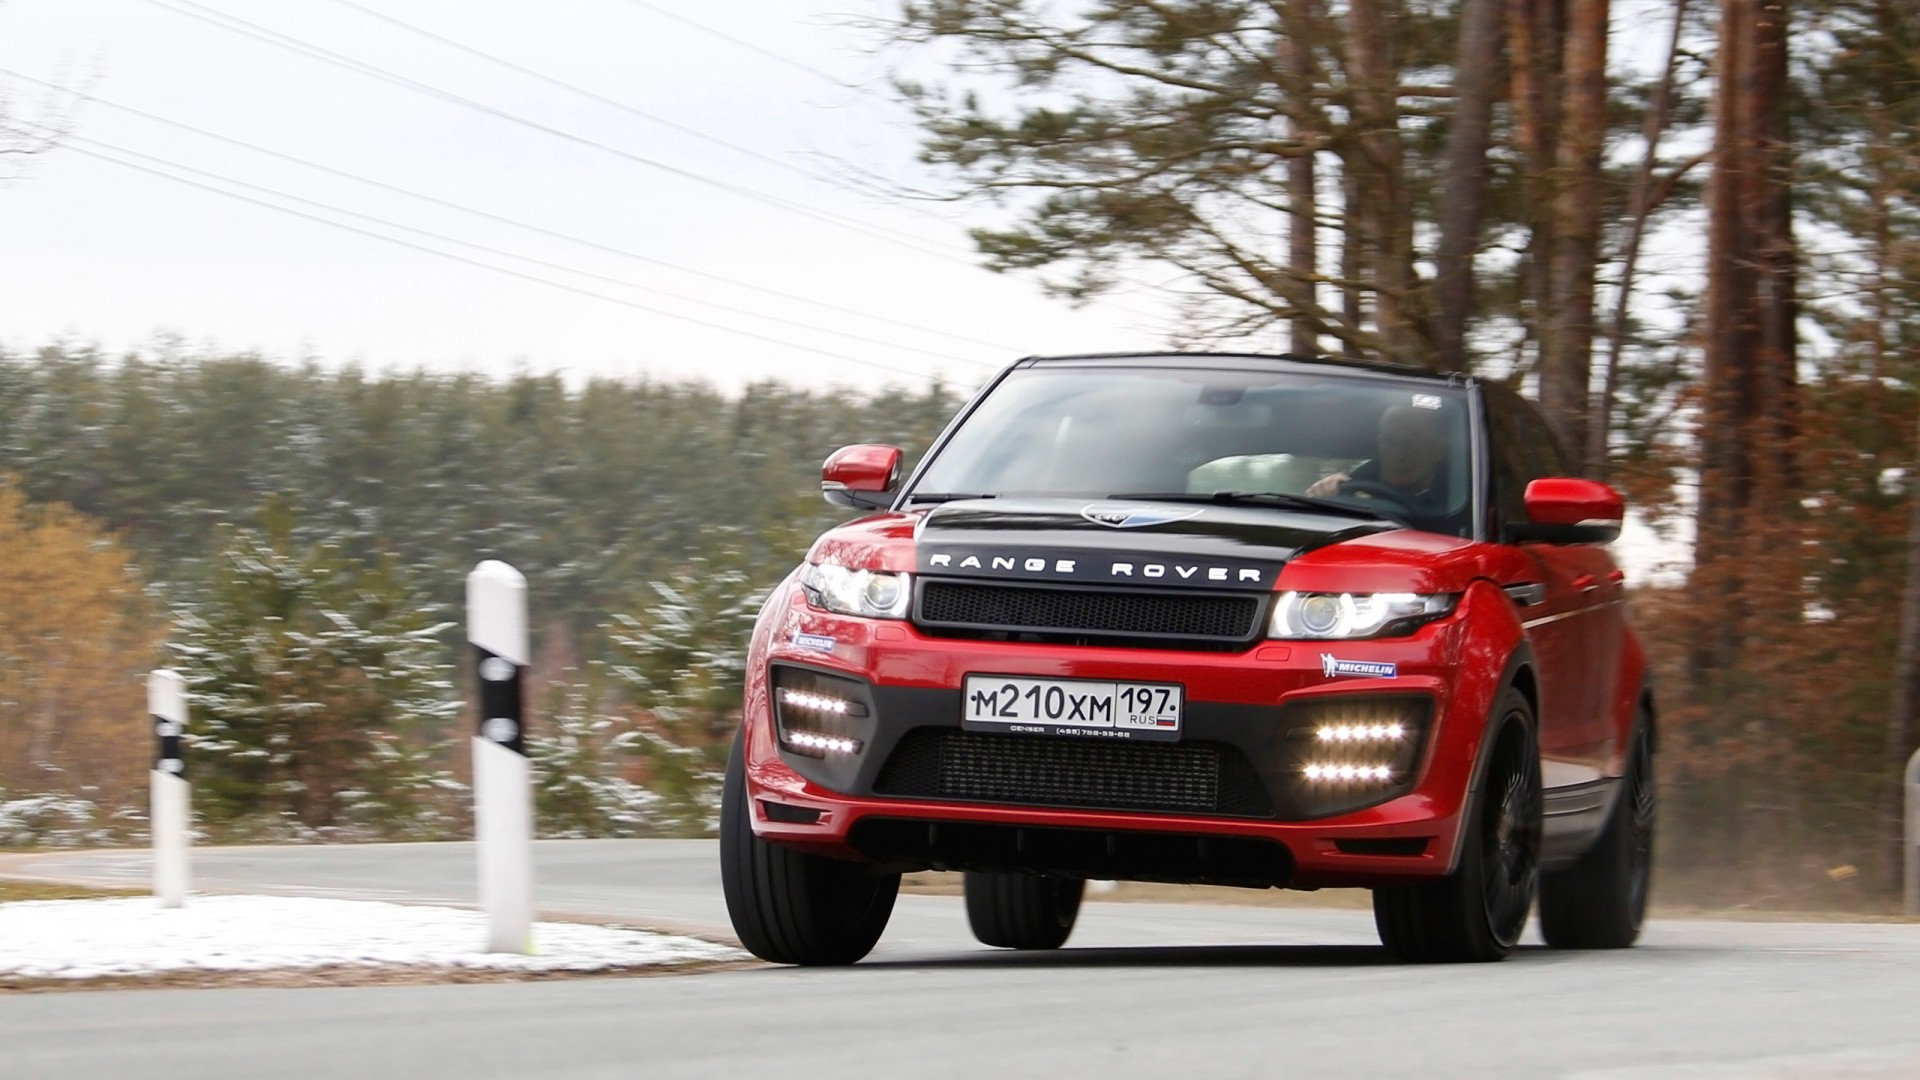 Range Rover Sport >> 2014 Range Rover Evoque By Larte Design Wallpaper | HD Car Wallpapers | ID #3947